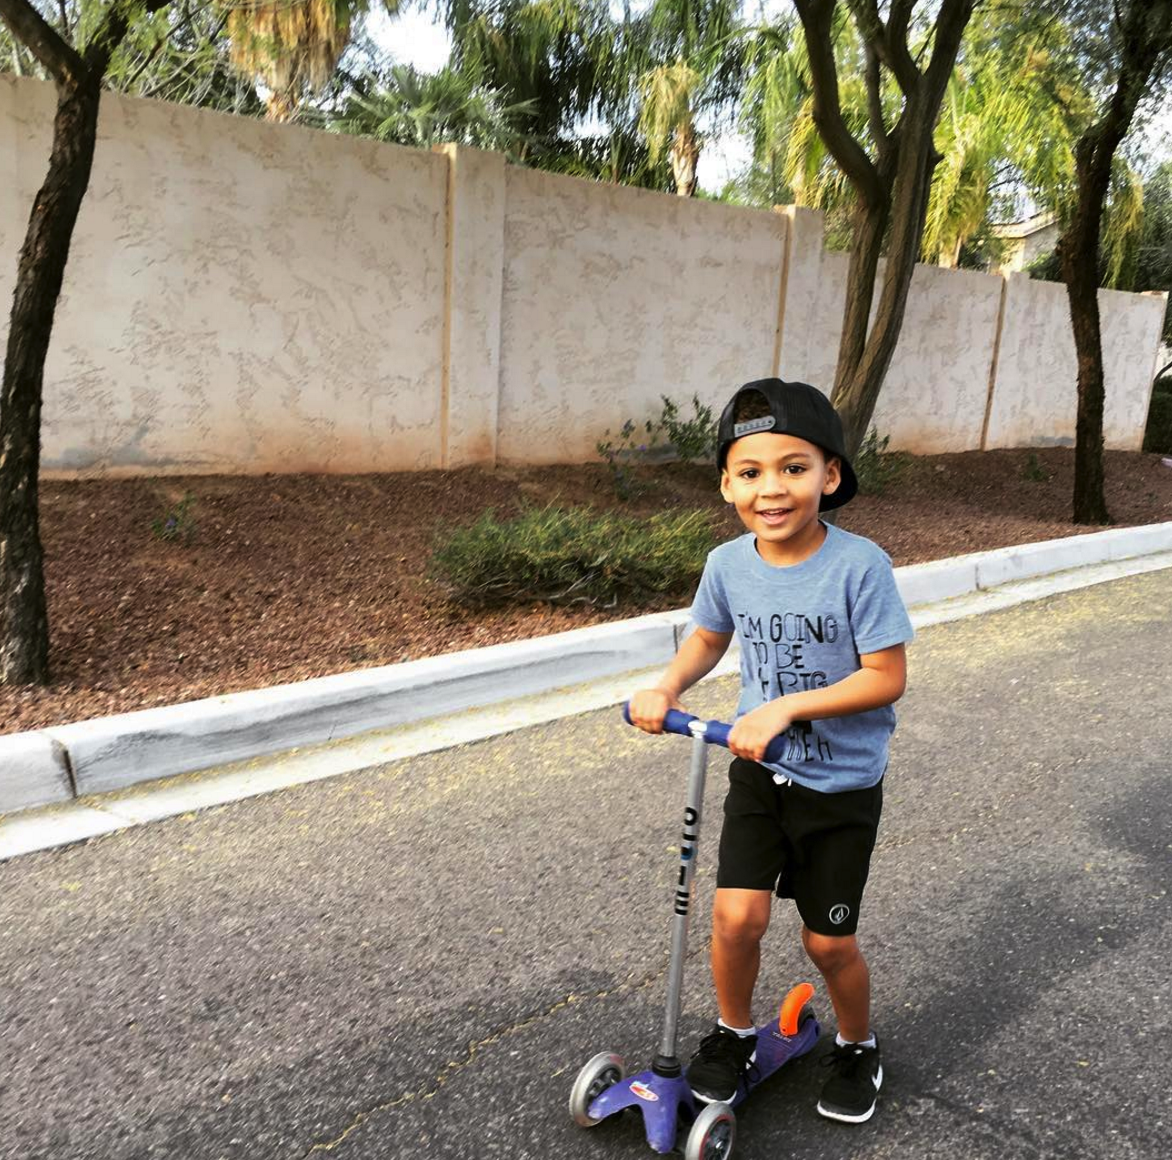 Daily scooter rides around the 'hood.